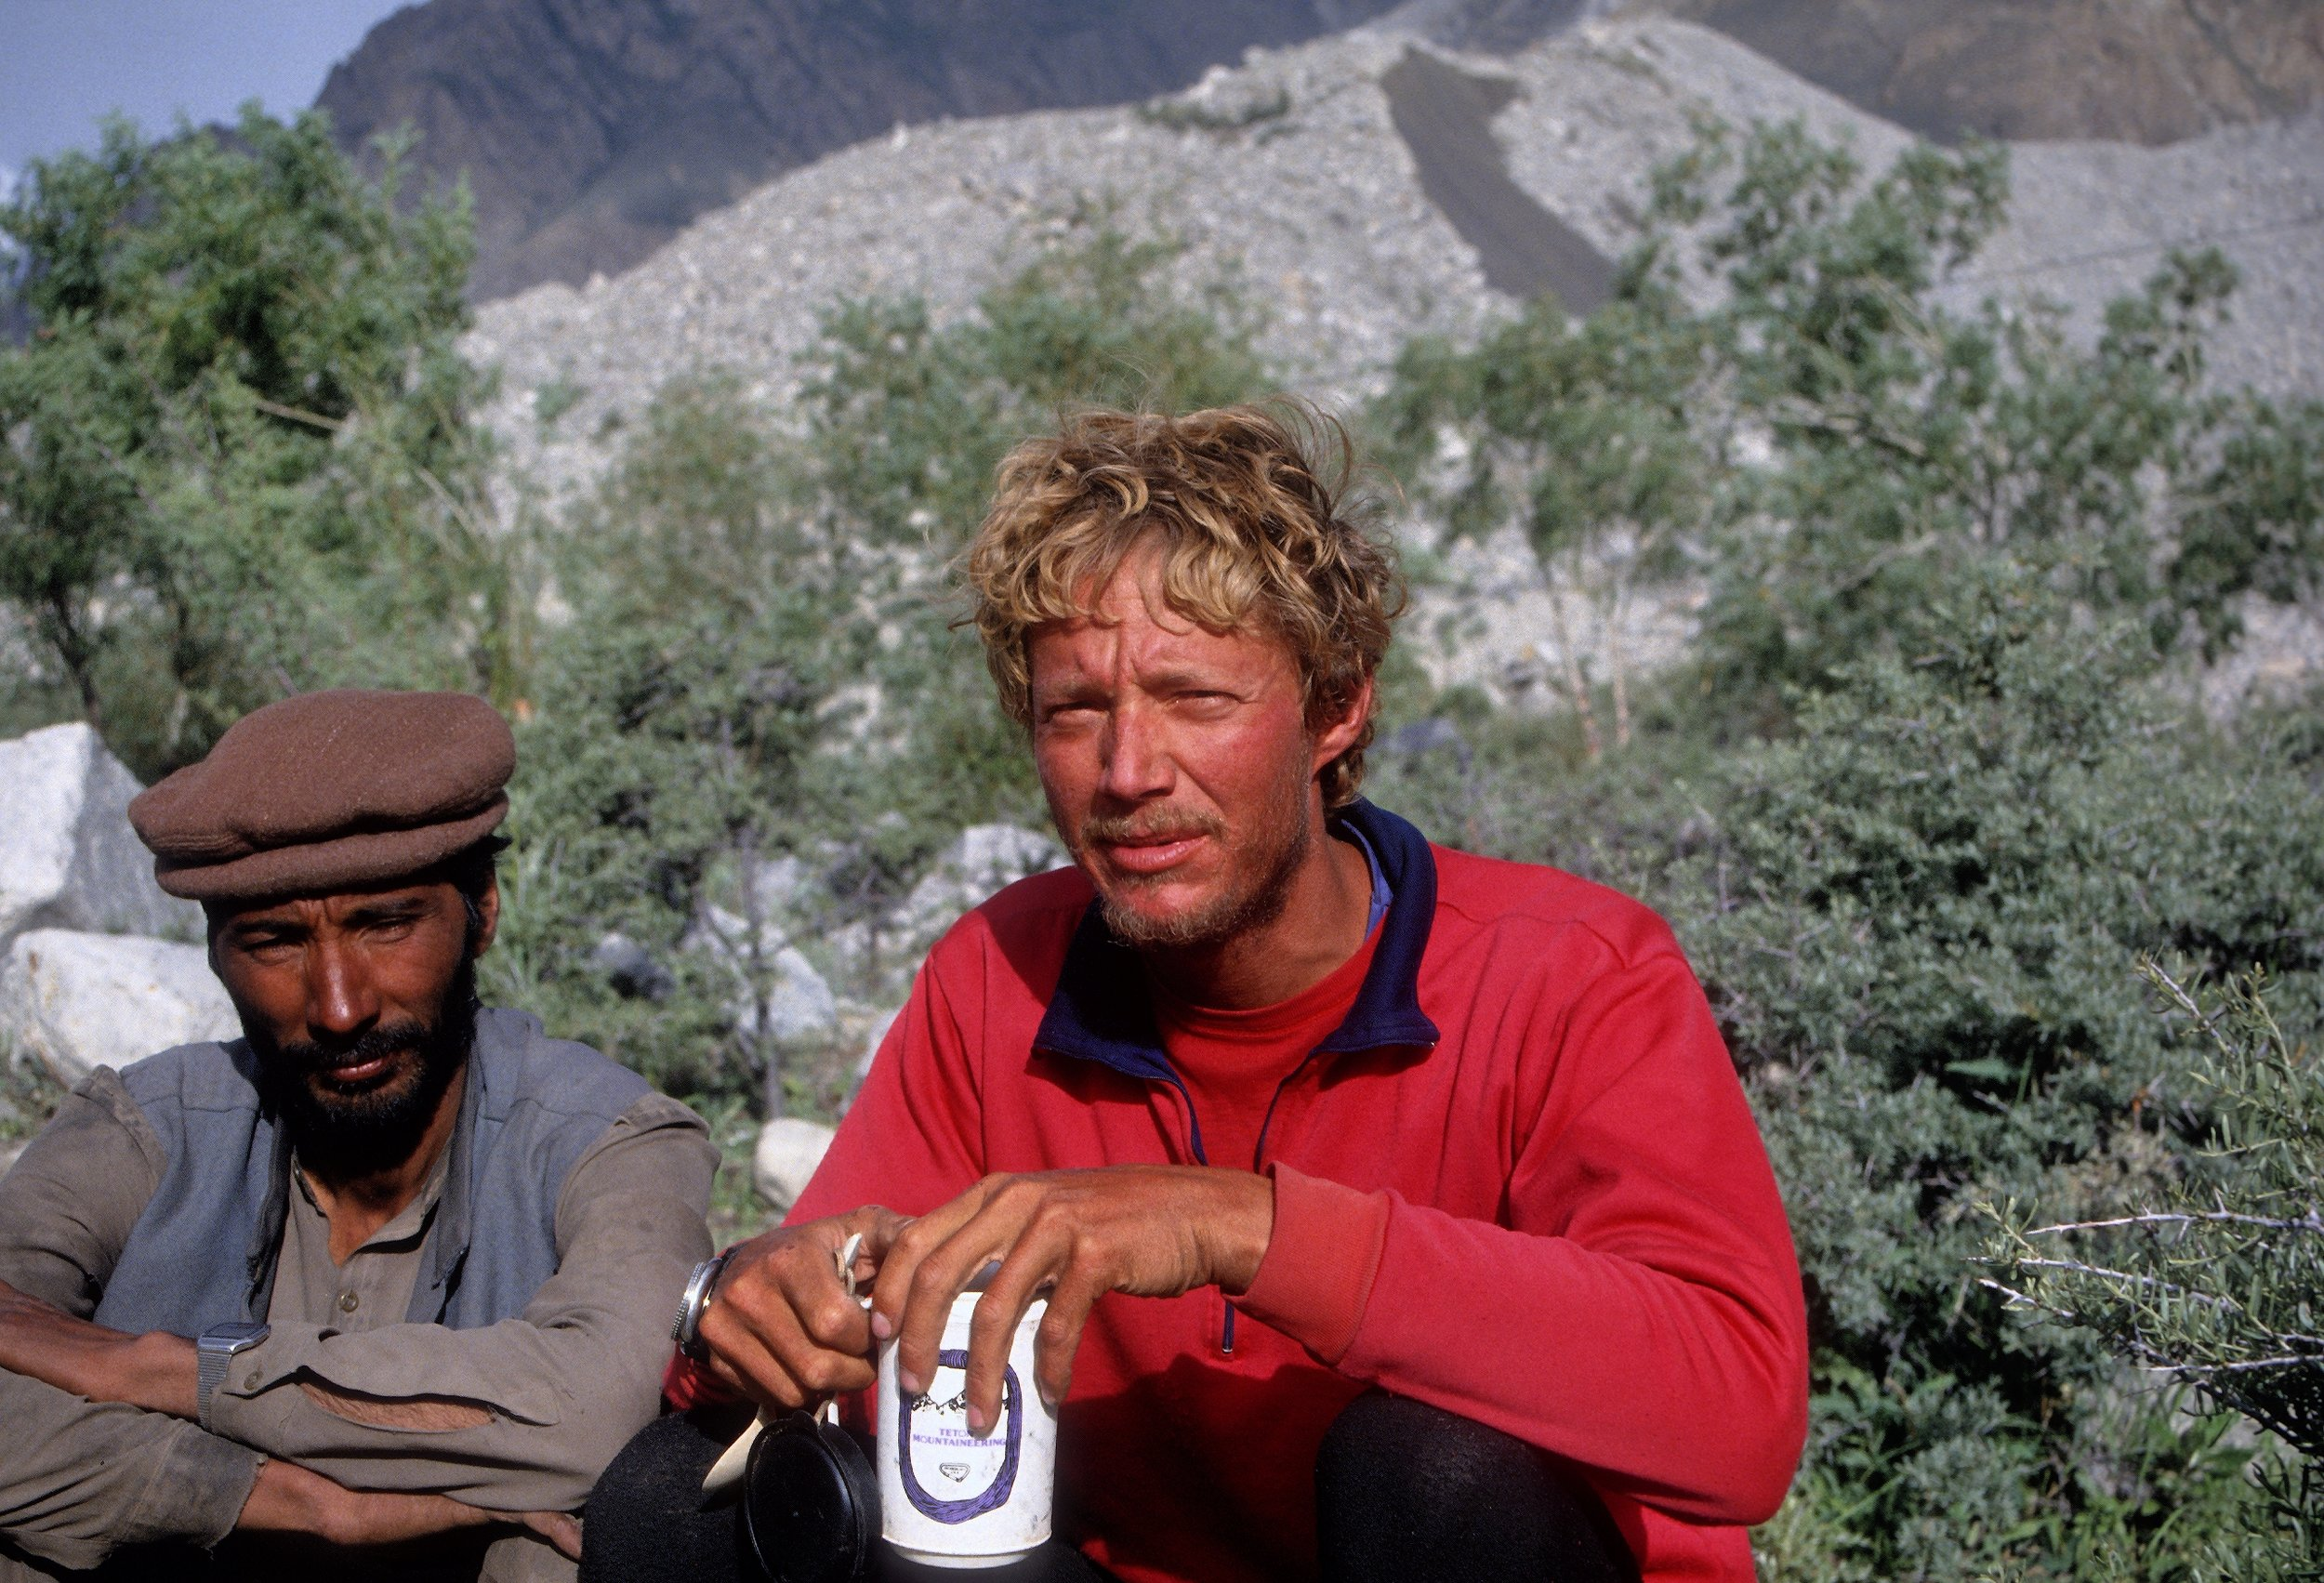 Wes Bunch on Broad Peak expedition w/ TM mug!